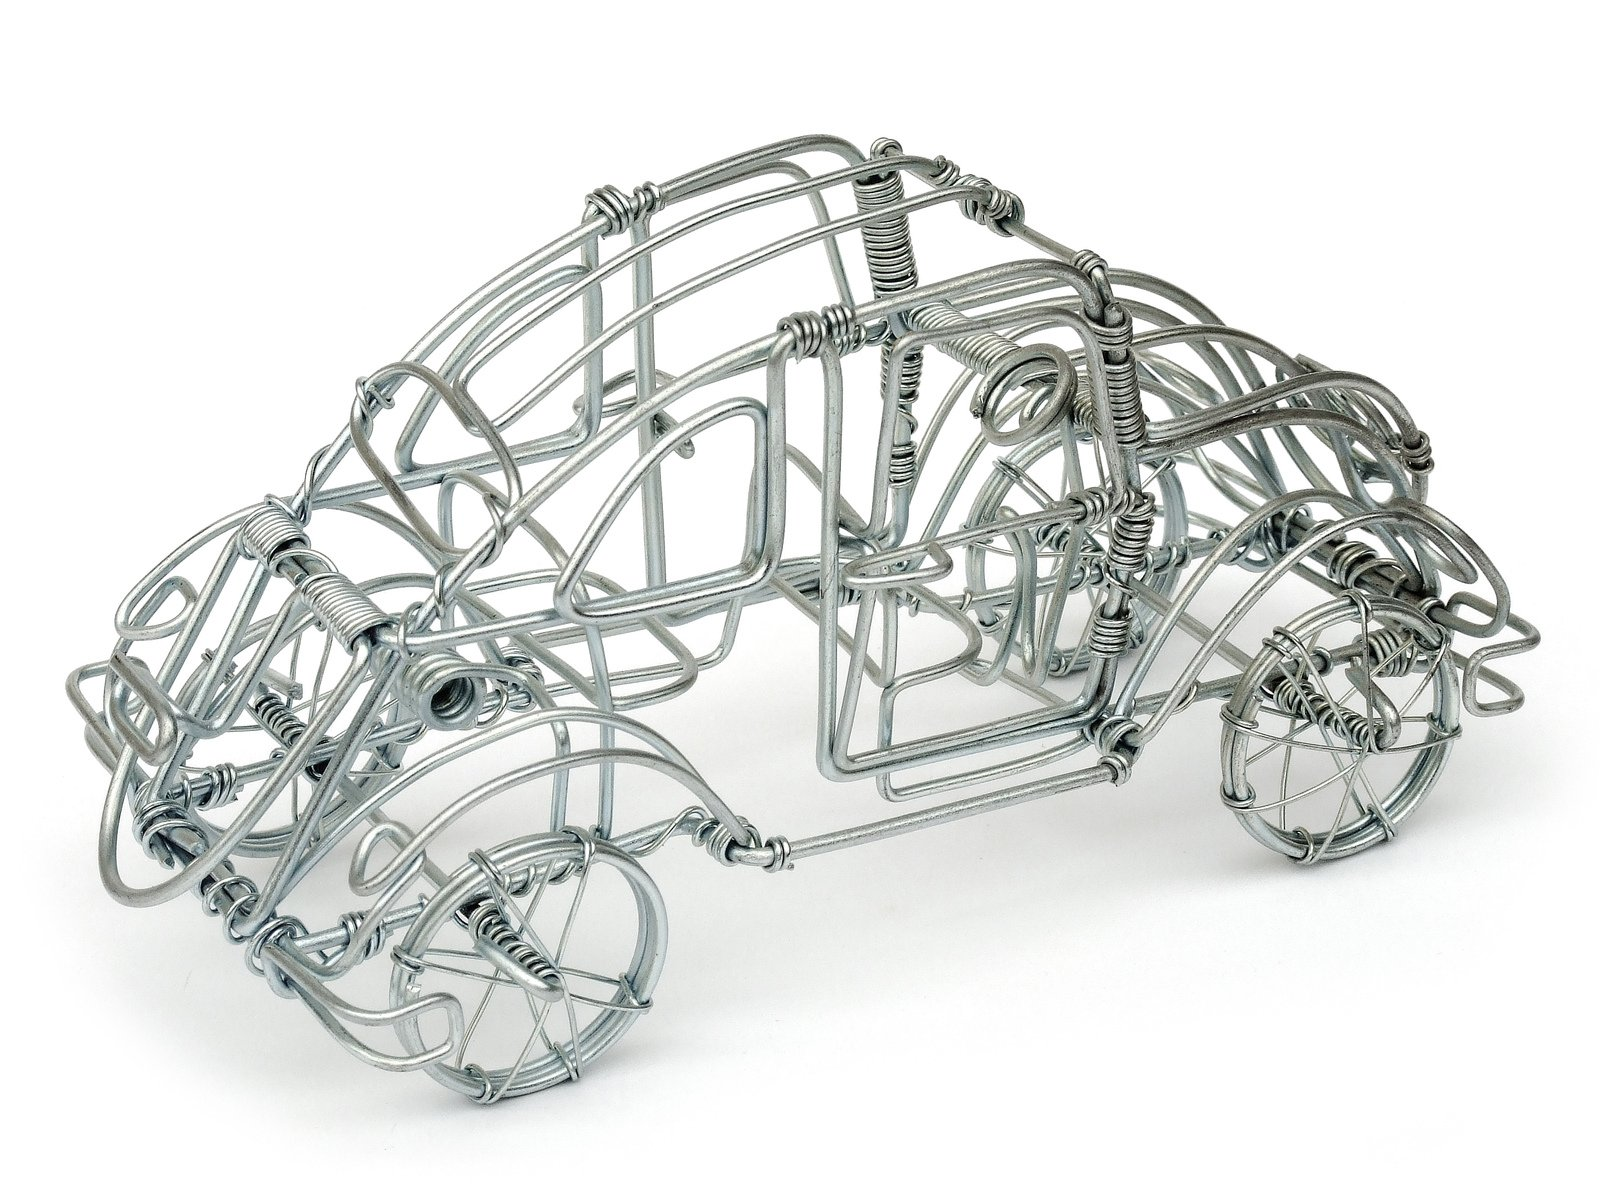 VW Beetle wire sculpture